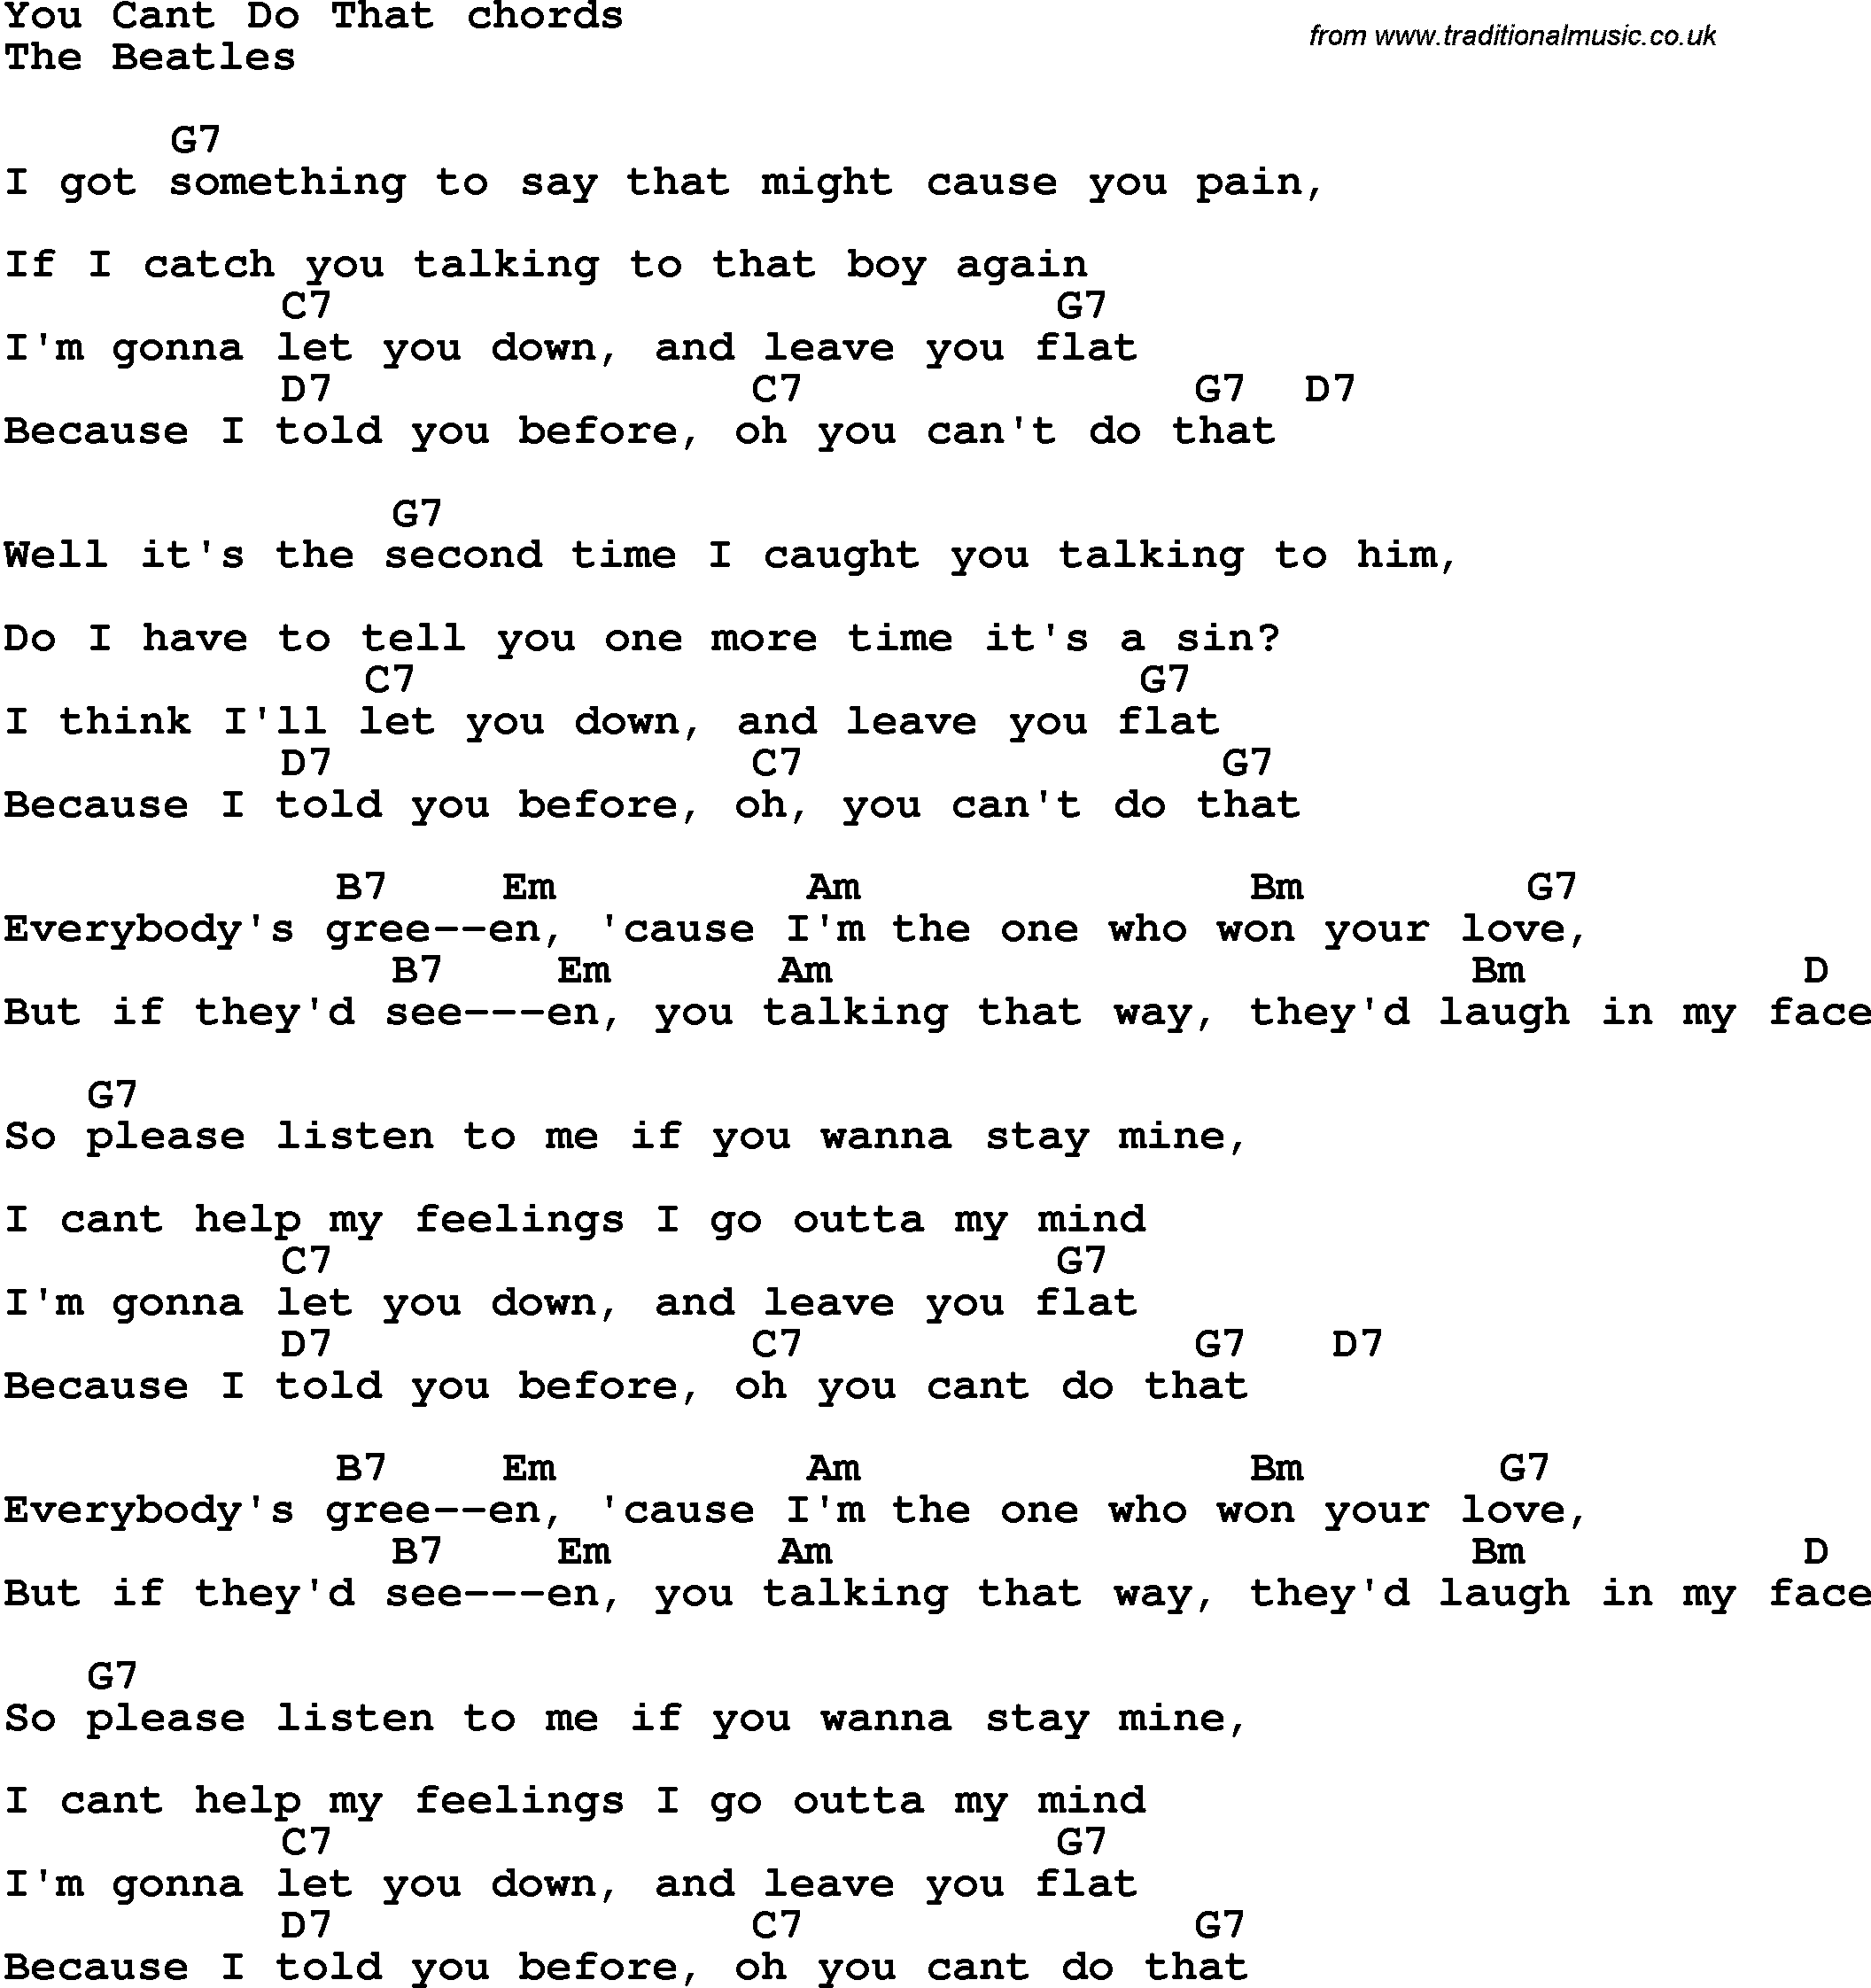 Song Lyrics With Guitar Chords For You Cant Do That